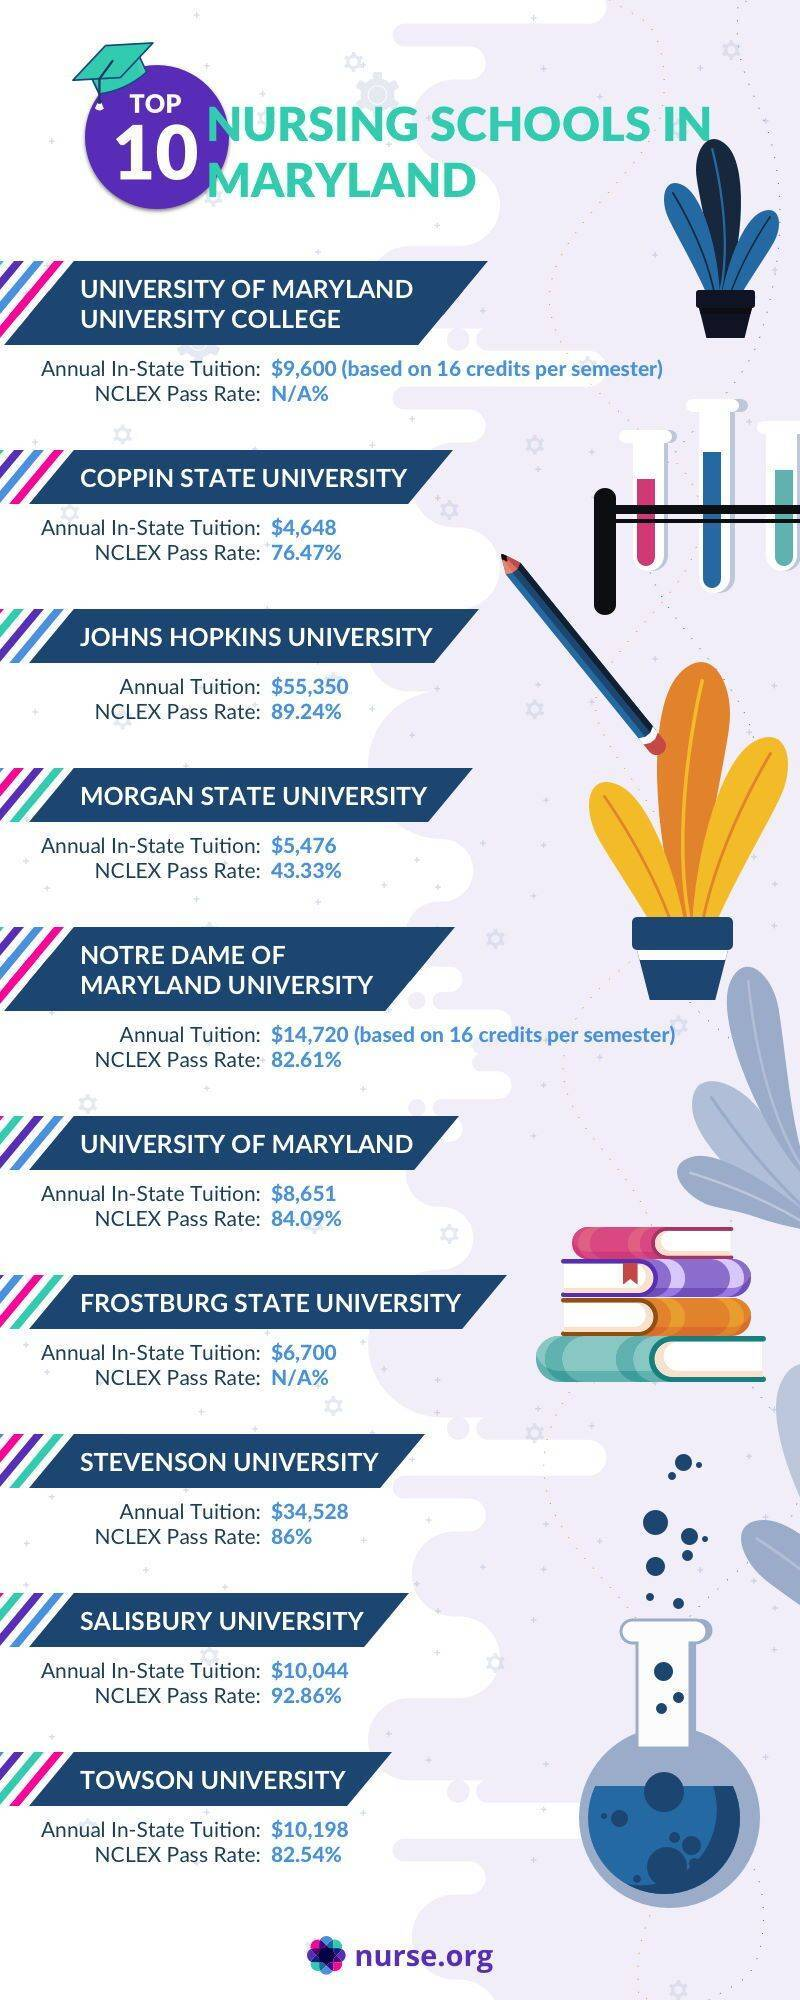 Infographic comparing the top nursing schools in Maryland